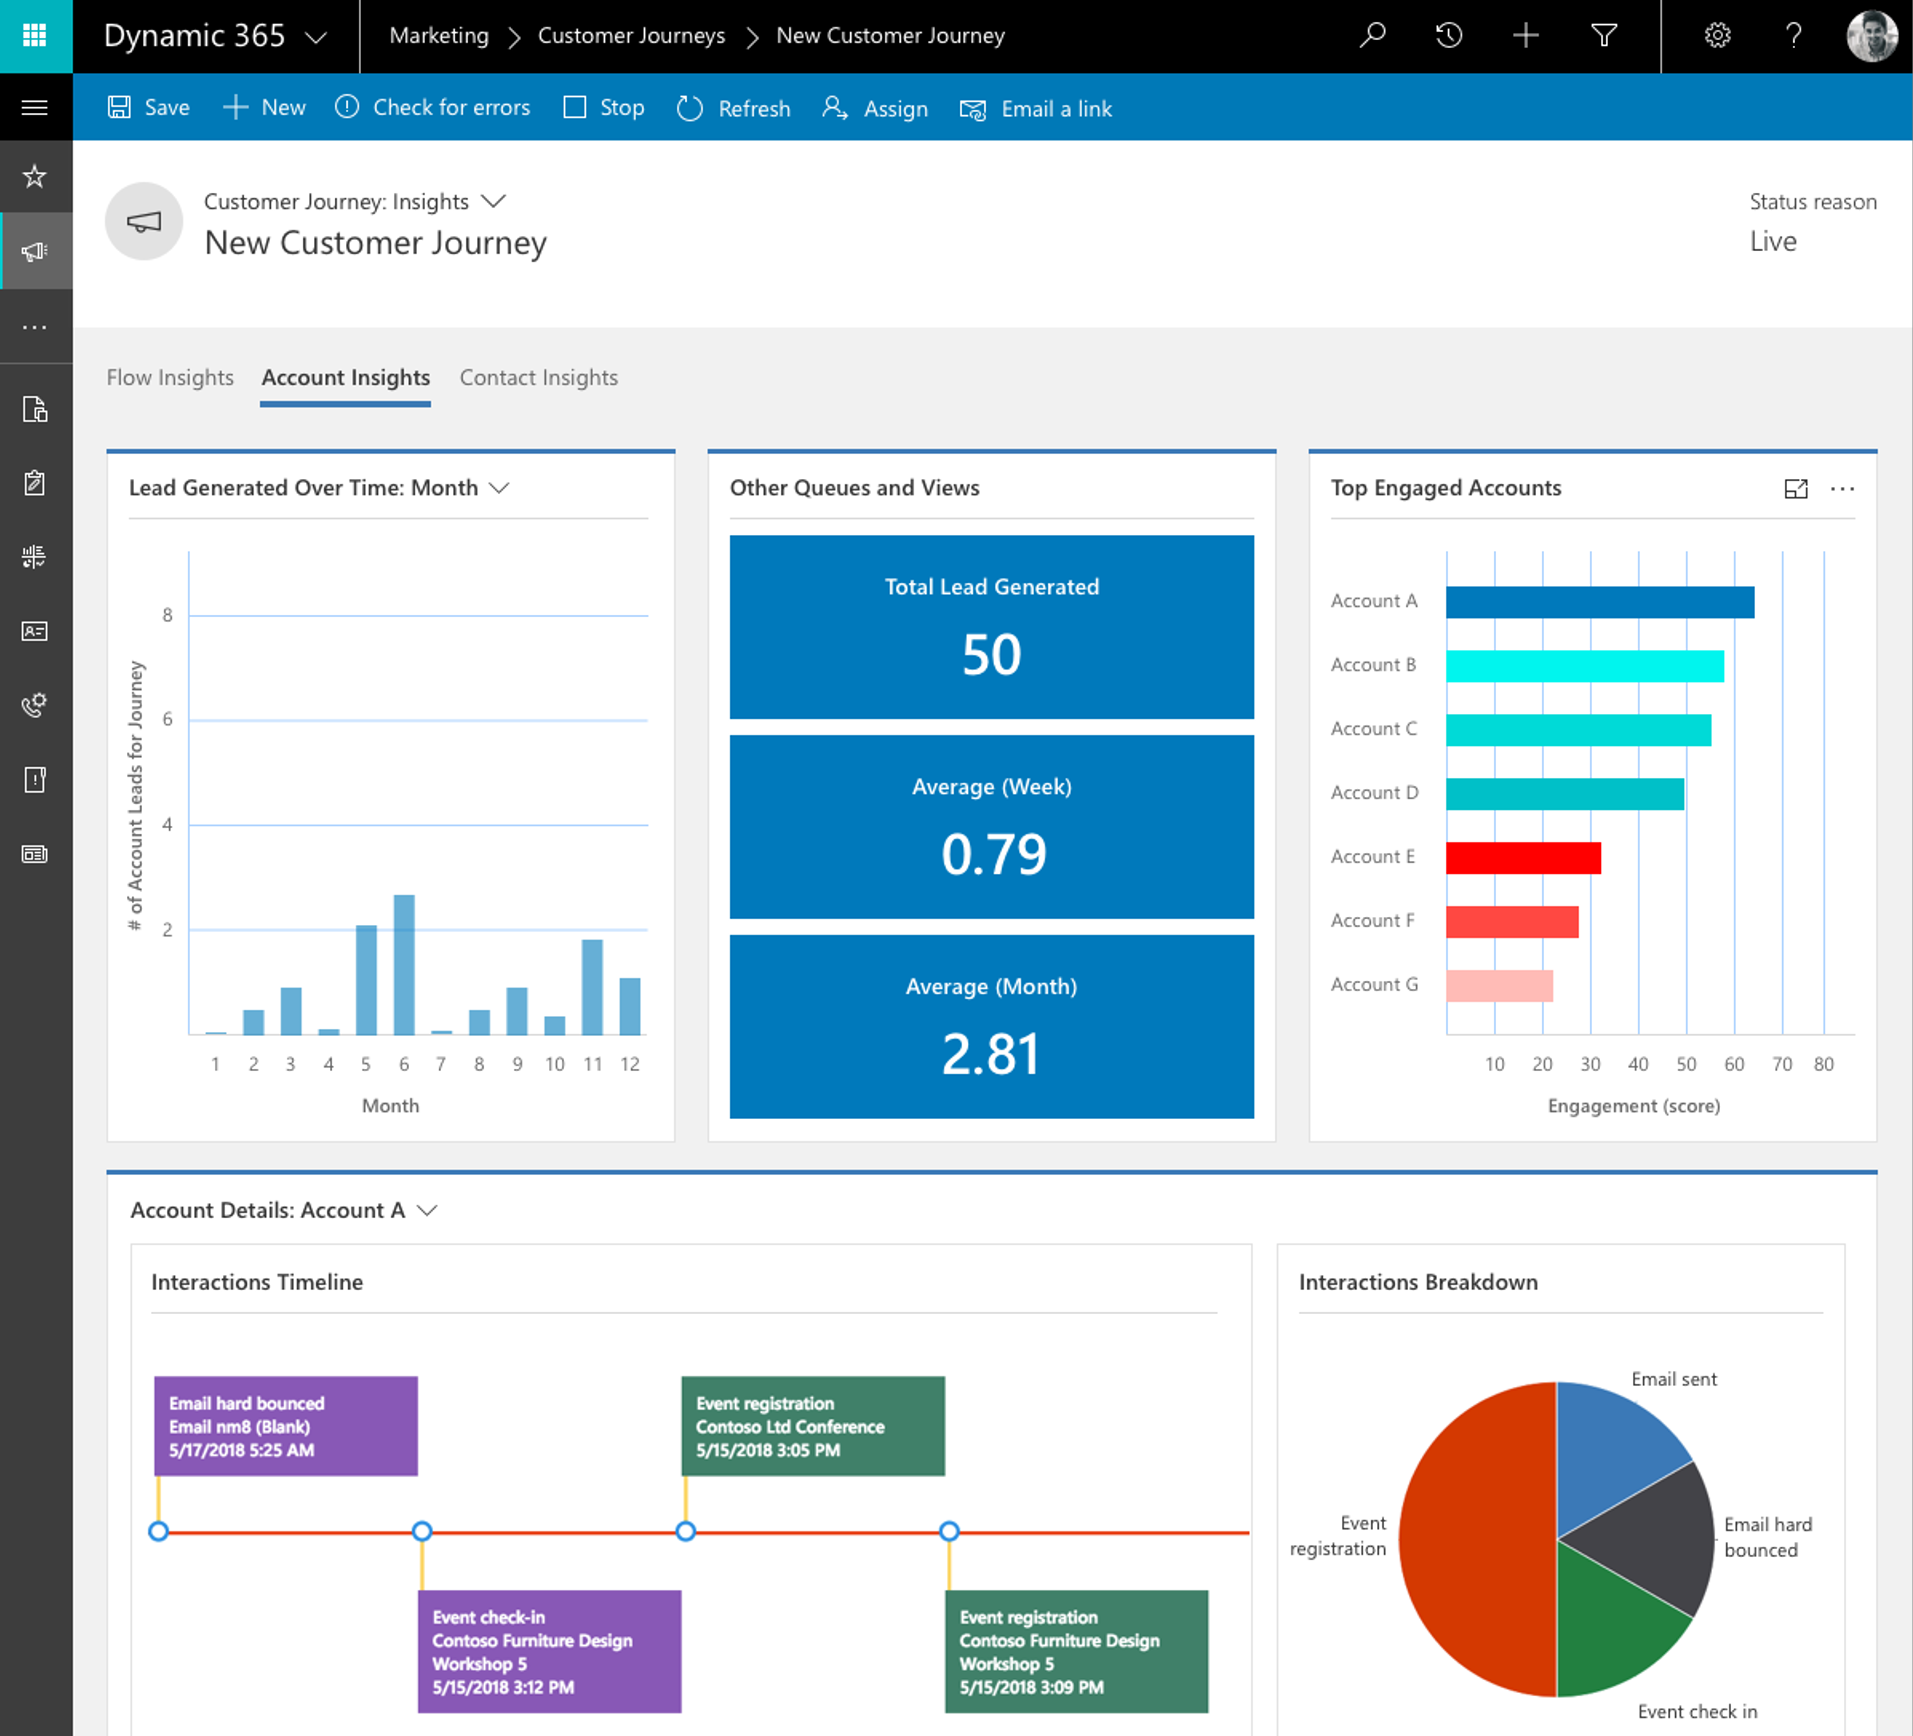 What's New in Dynamics 365 for Marketing - October 2018 Update